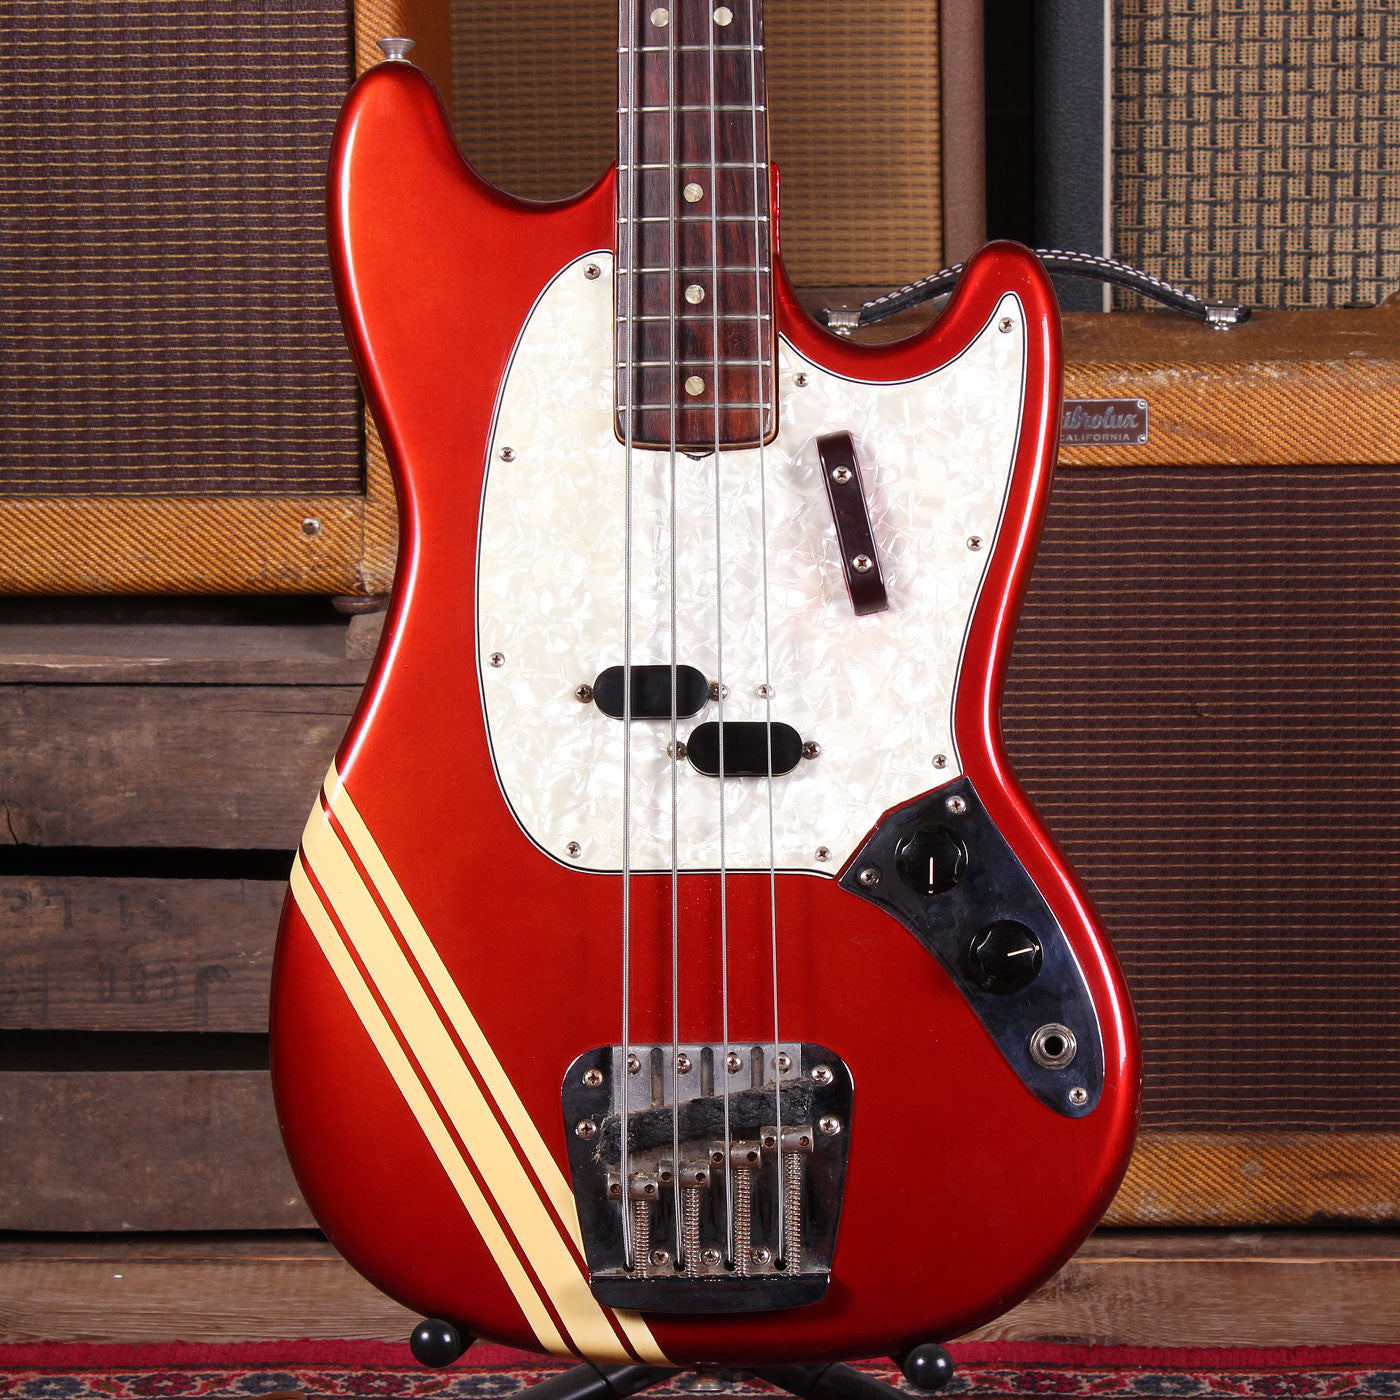 1973 Fender Mustang Bass - Comp Stripe - Candy Apple Red - Vintage Guitar Boutique - 3